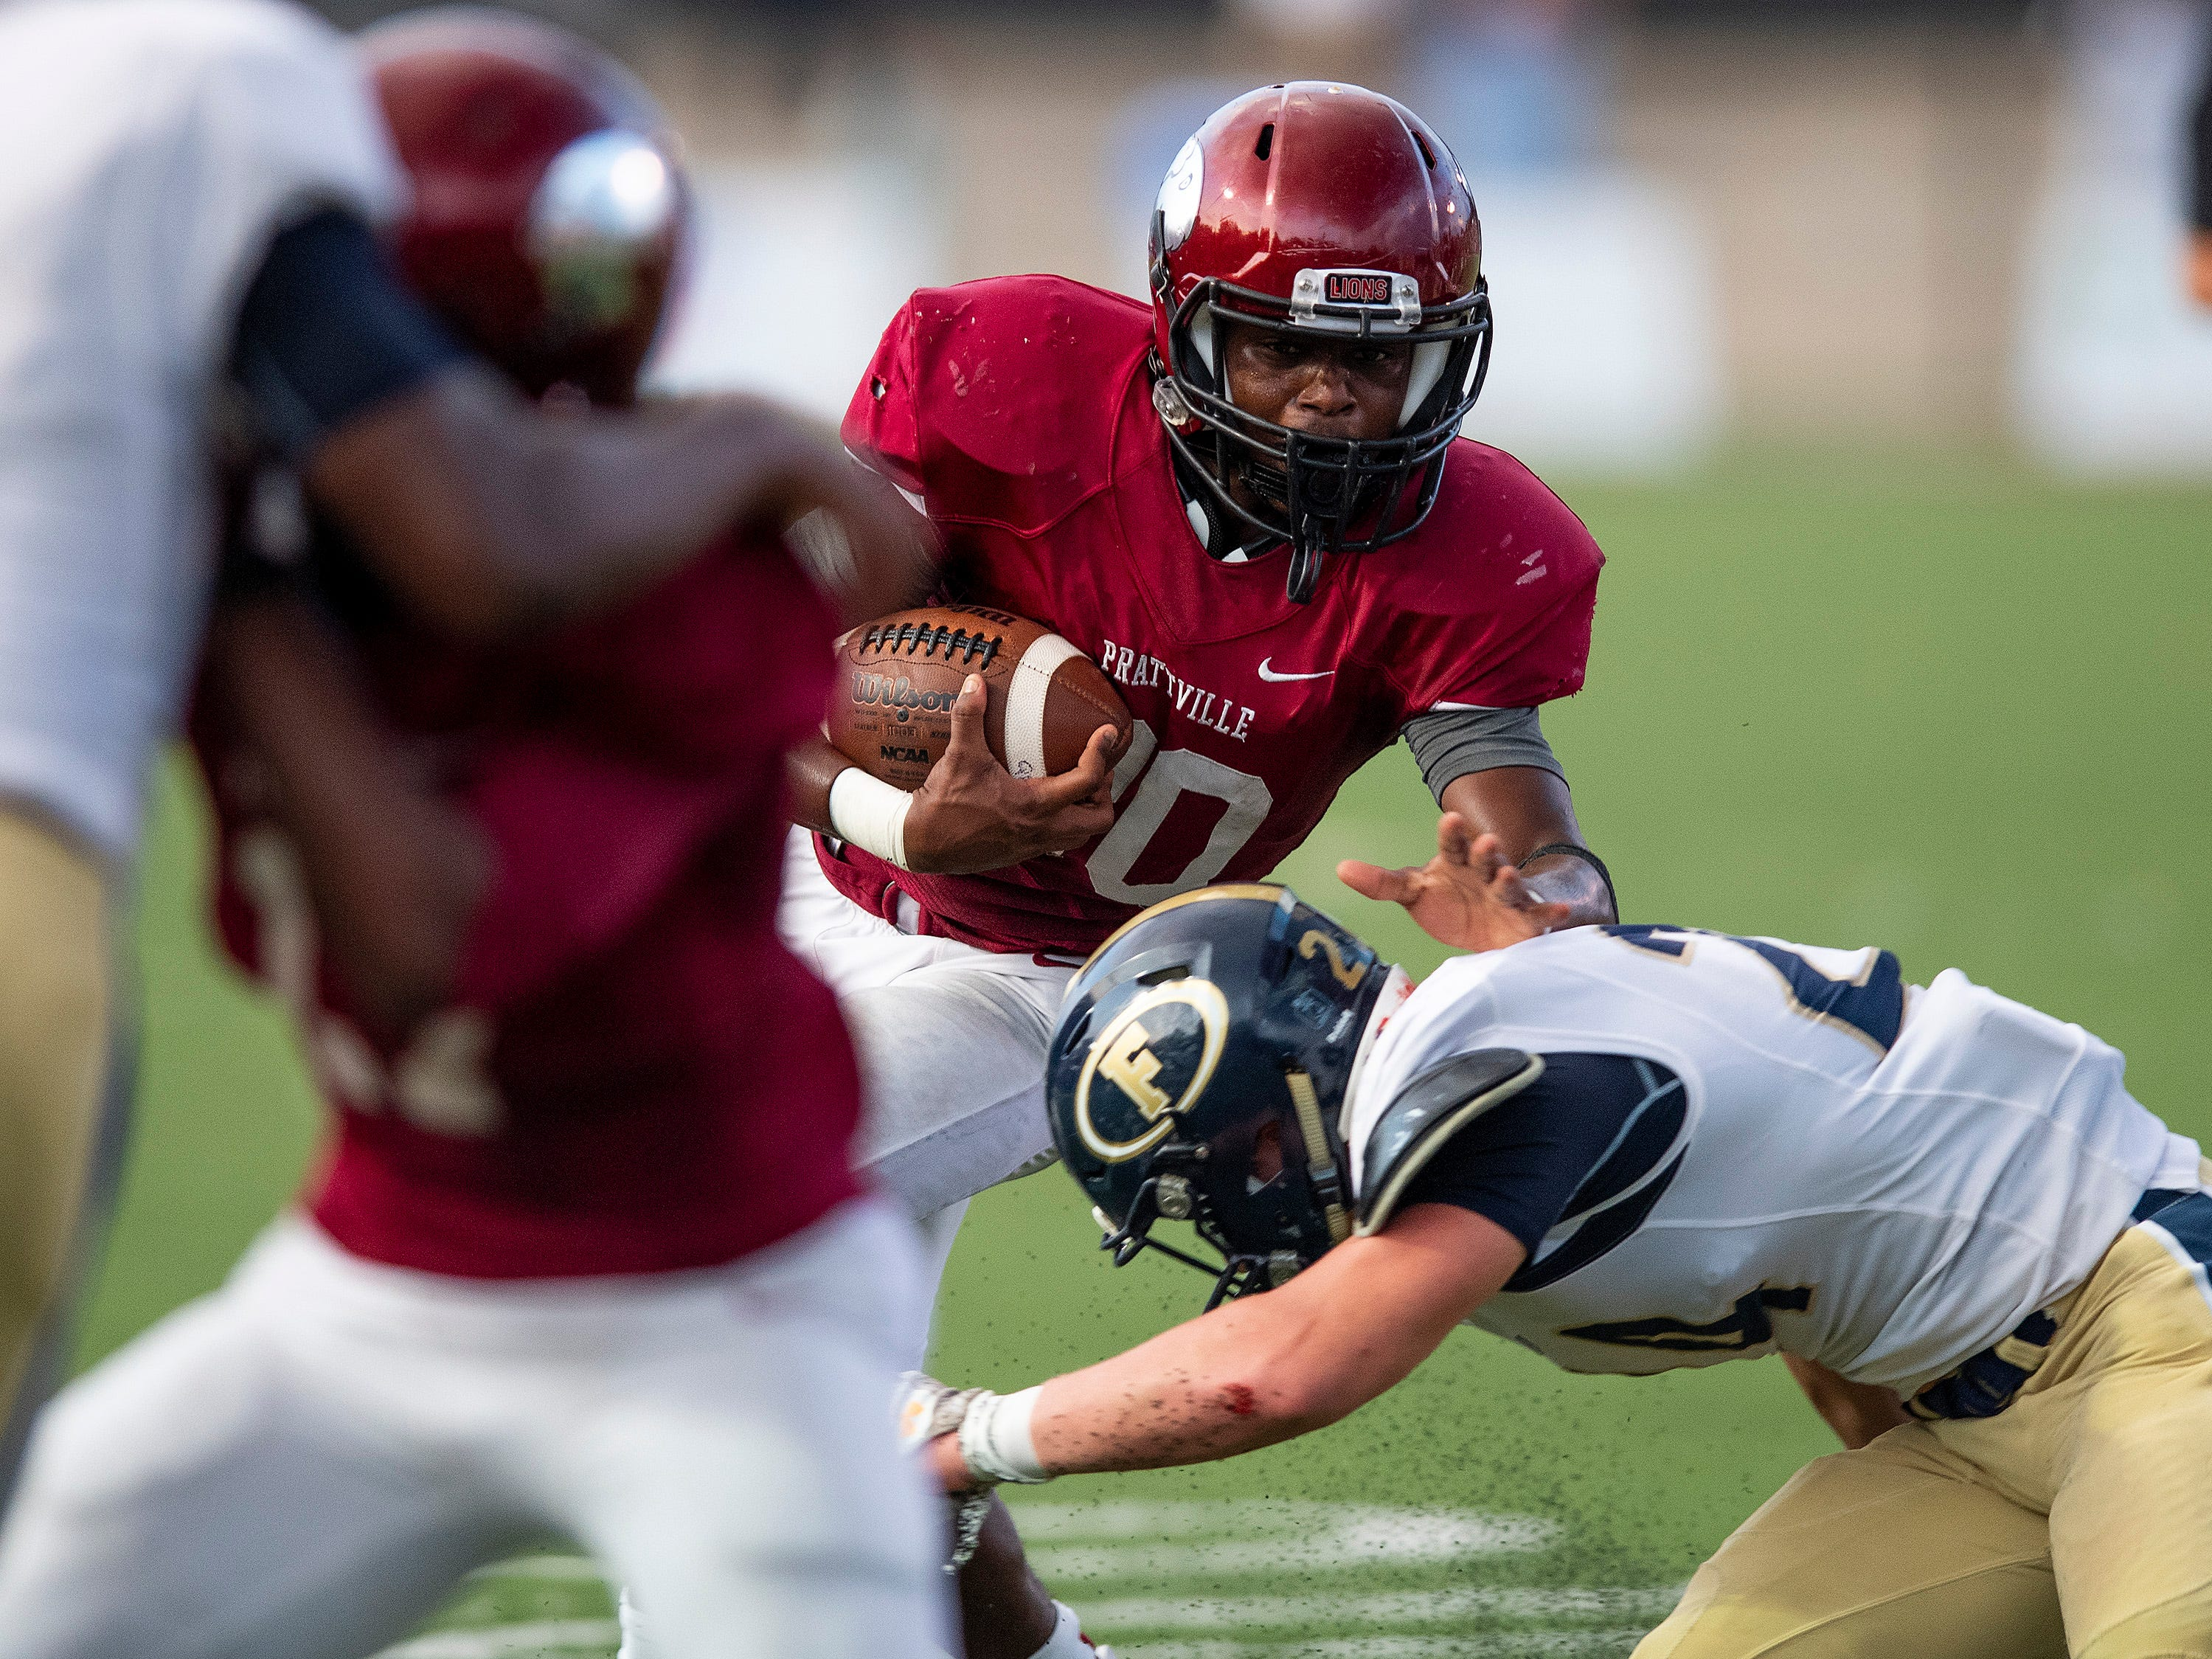 Prattville's Keondre Powell (20) fights for yardage against Foley at Stanley-Jensen Stadium in Prattville, Ala., on Friday August 24, 2018.